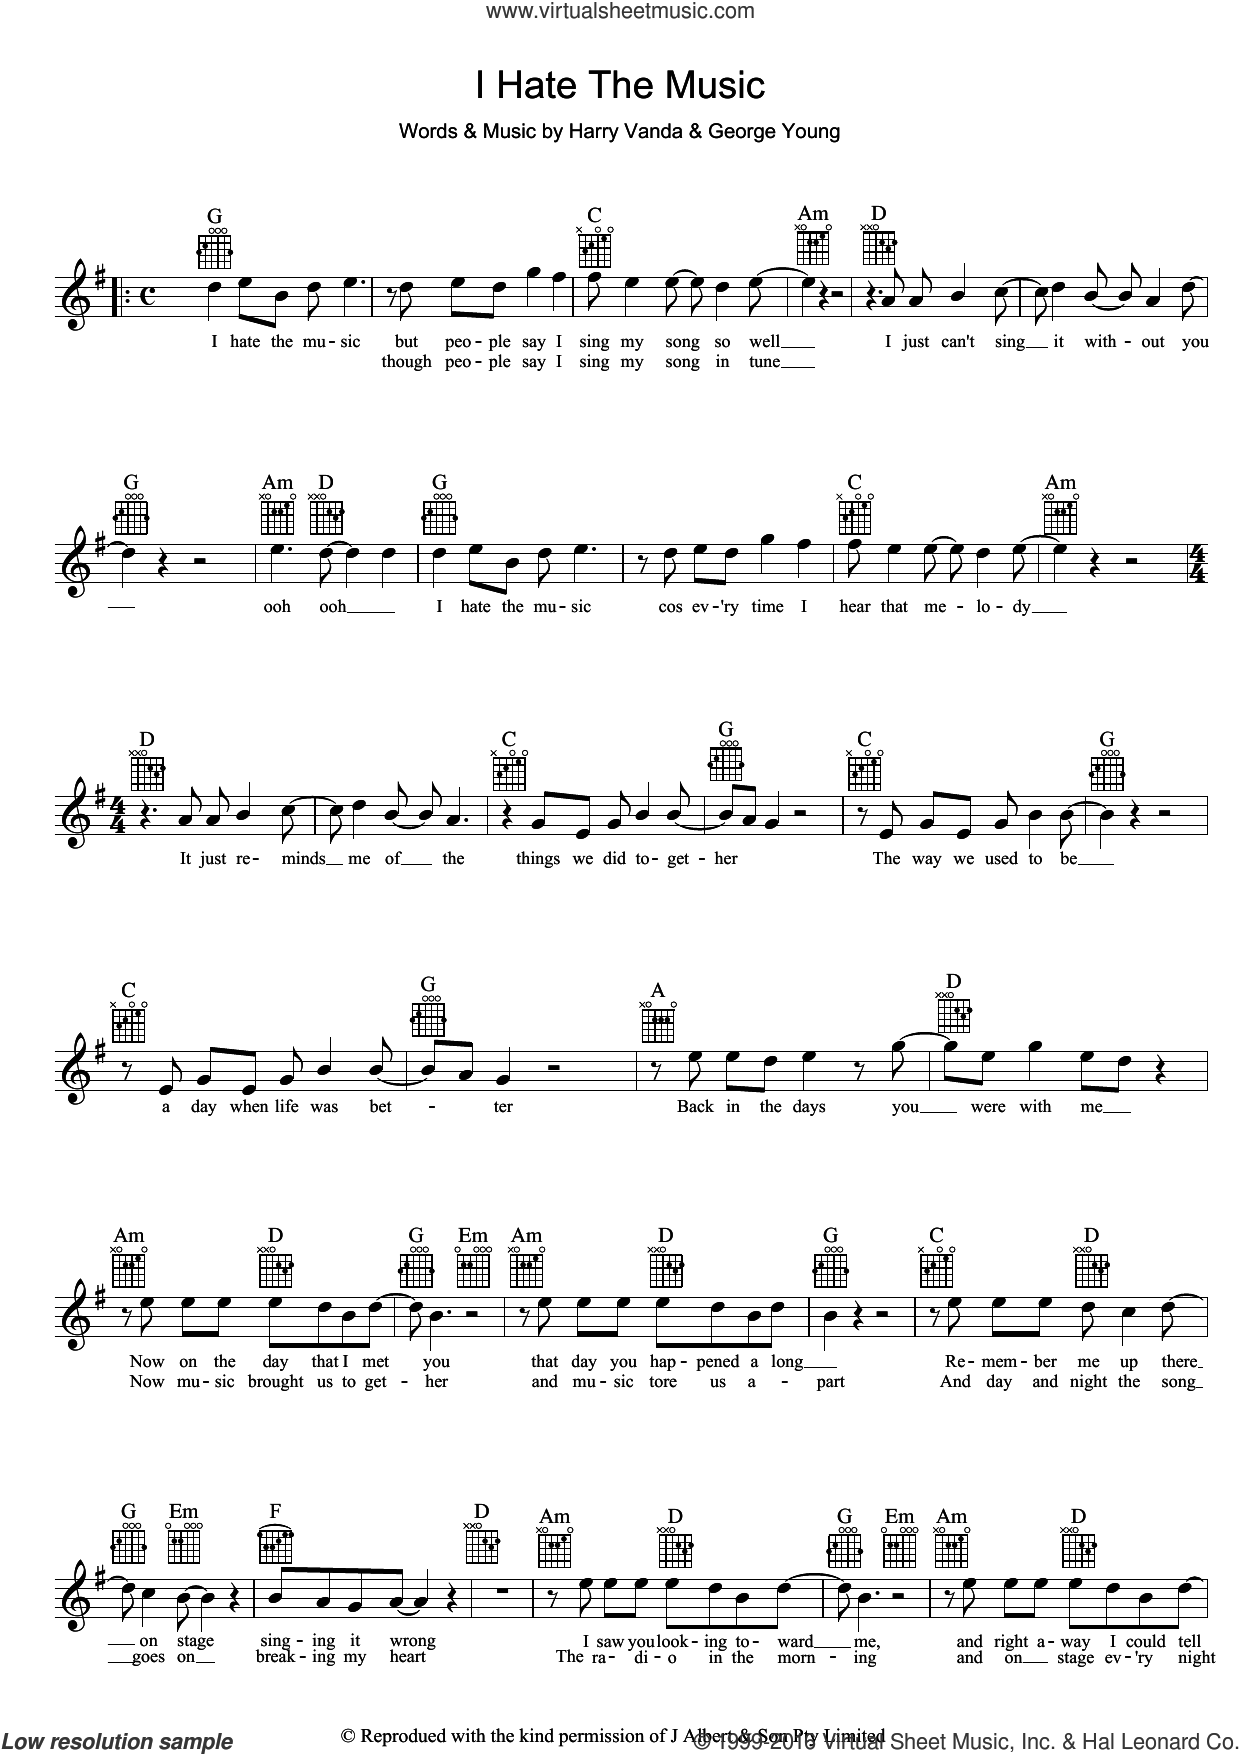 I Hate The Music sheet music for voice, piano or guitar by John Paul Young, George Young and Harry Vanda, intermediate